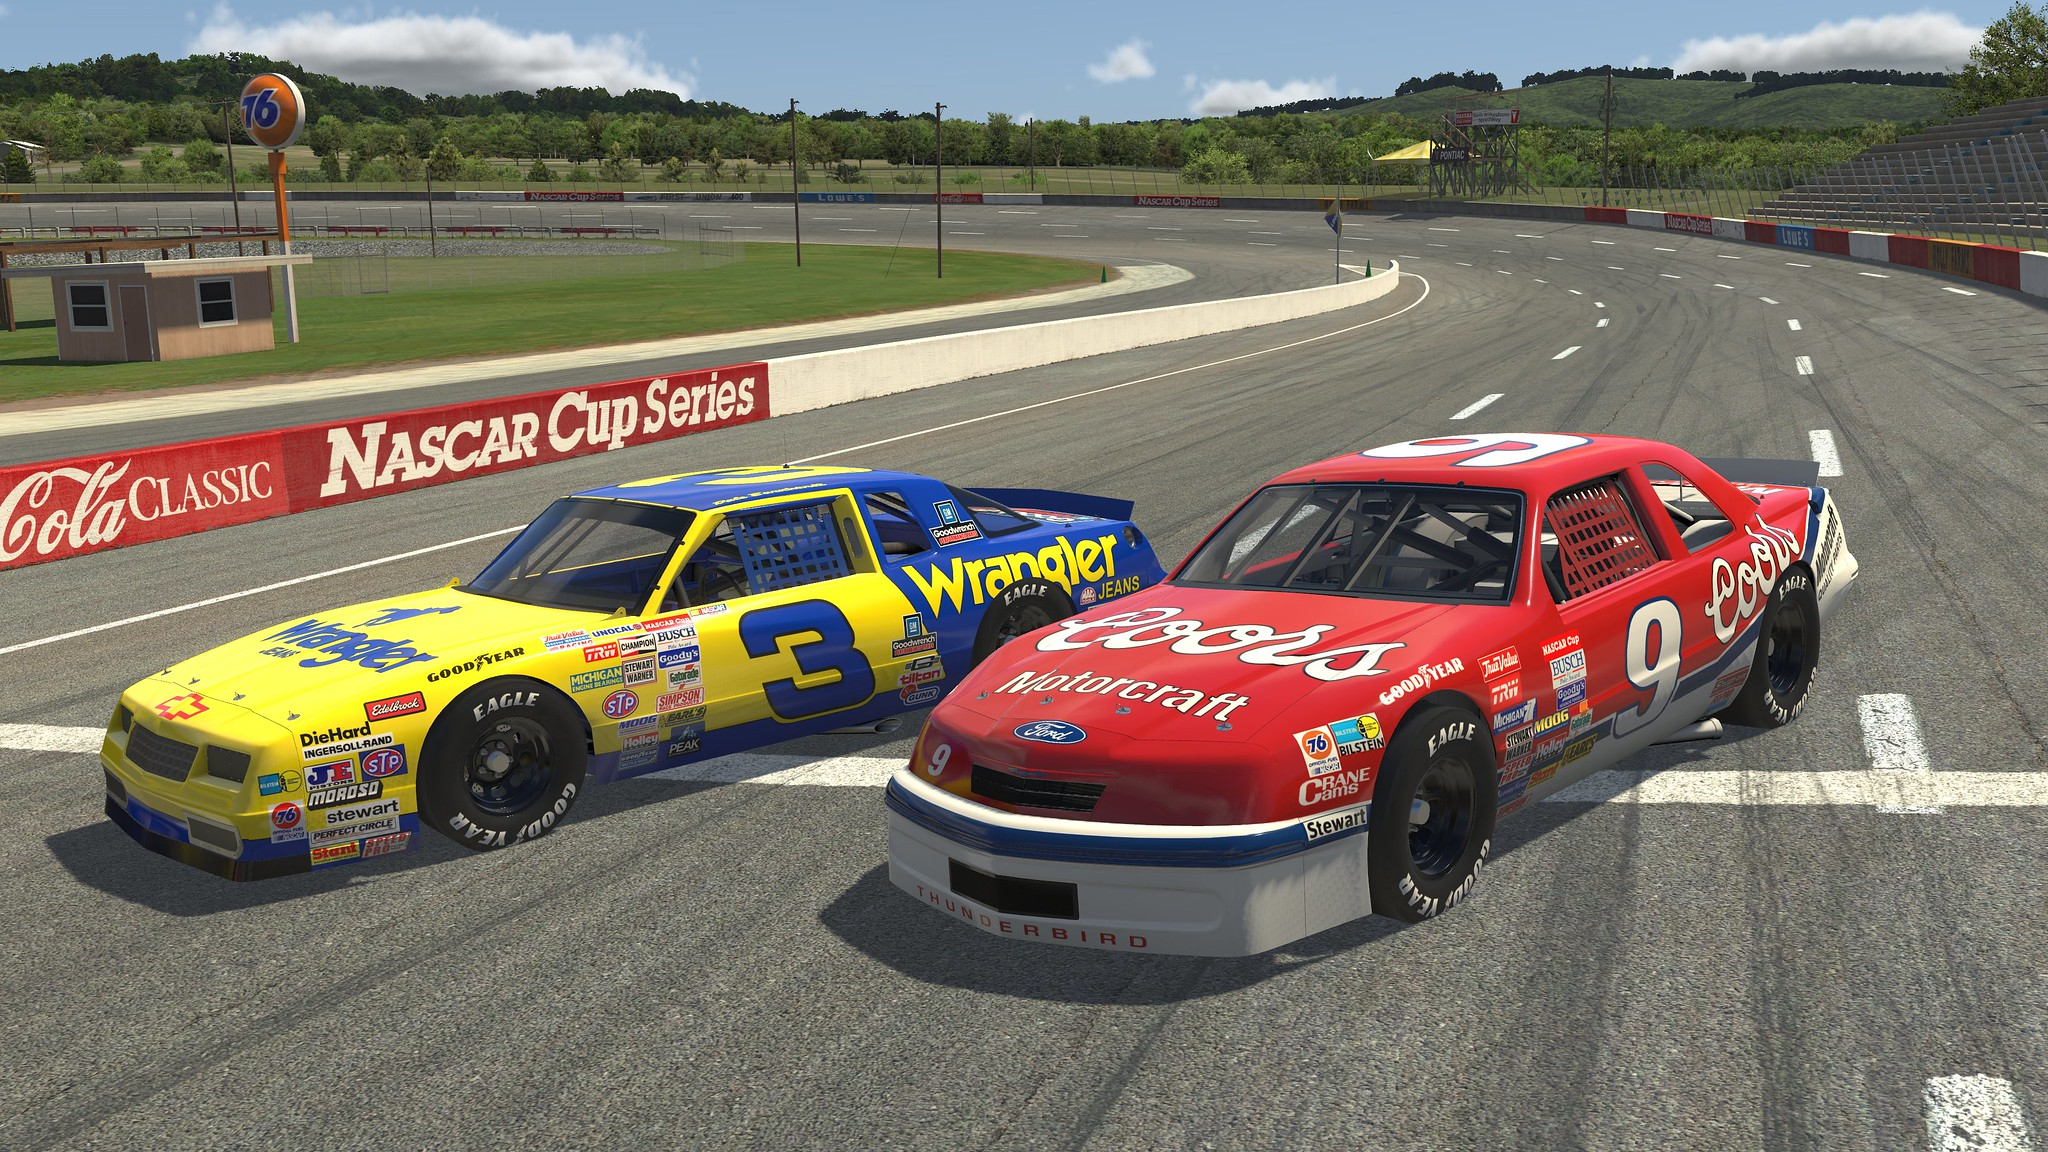 Iracing 87 Chevy Monte Carlo Ford Thunderbird Stockcars Coming Soon Bsimracing